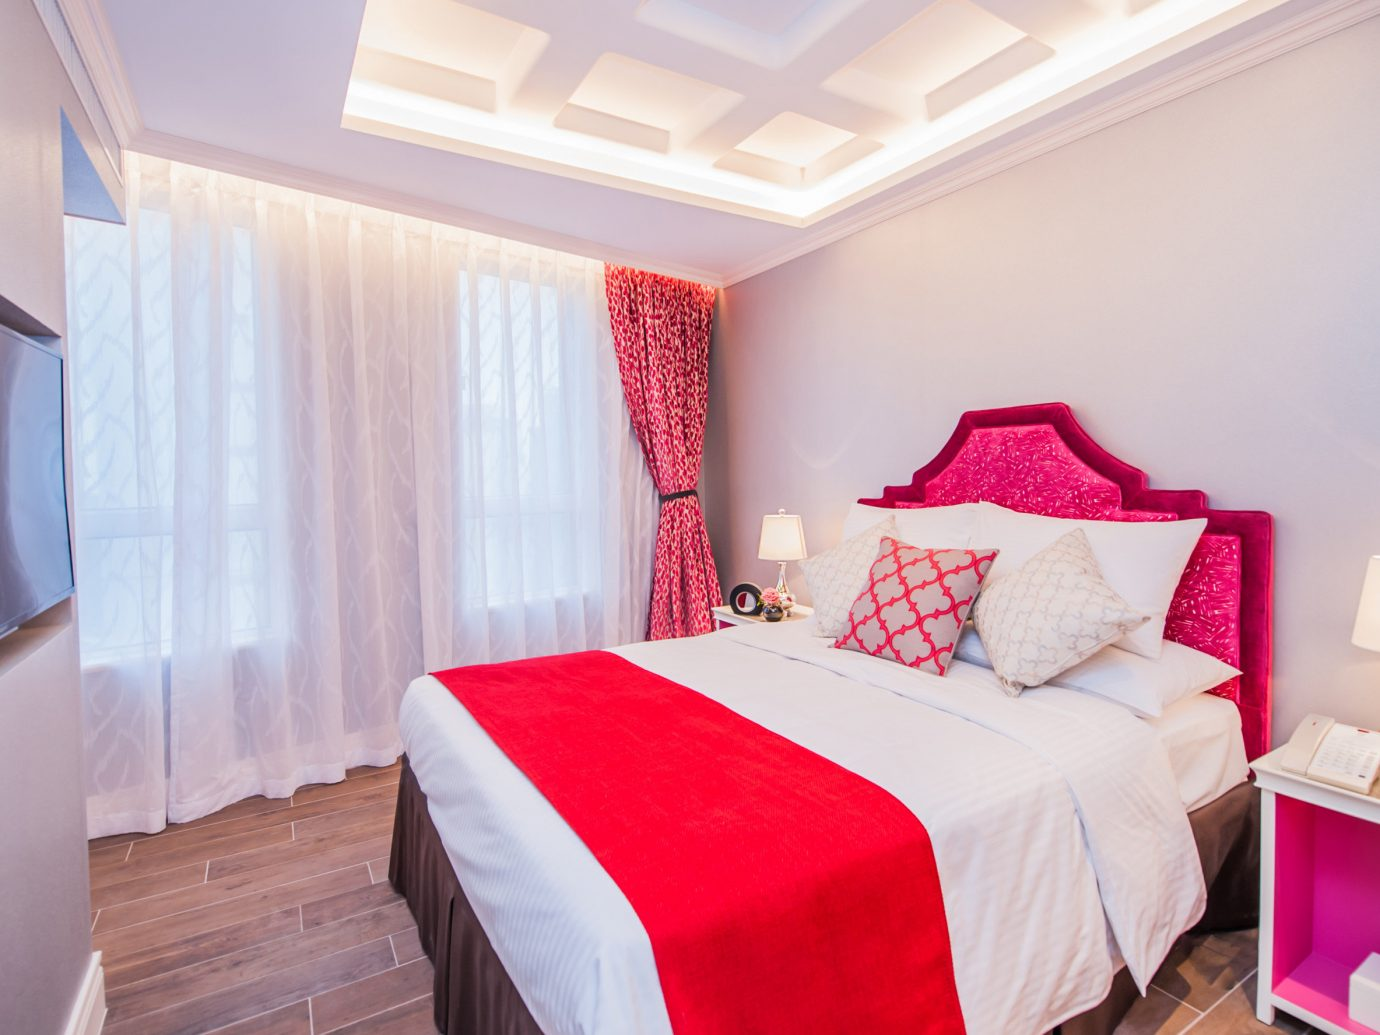 Hotels wall bed indoor red floor room Bedroom property Suite white cottage interior design bed sheet real estate apartment